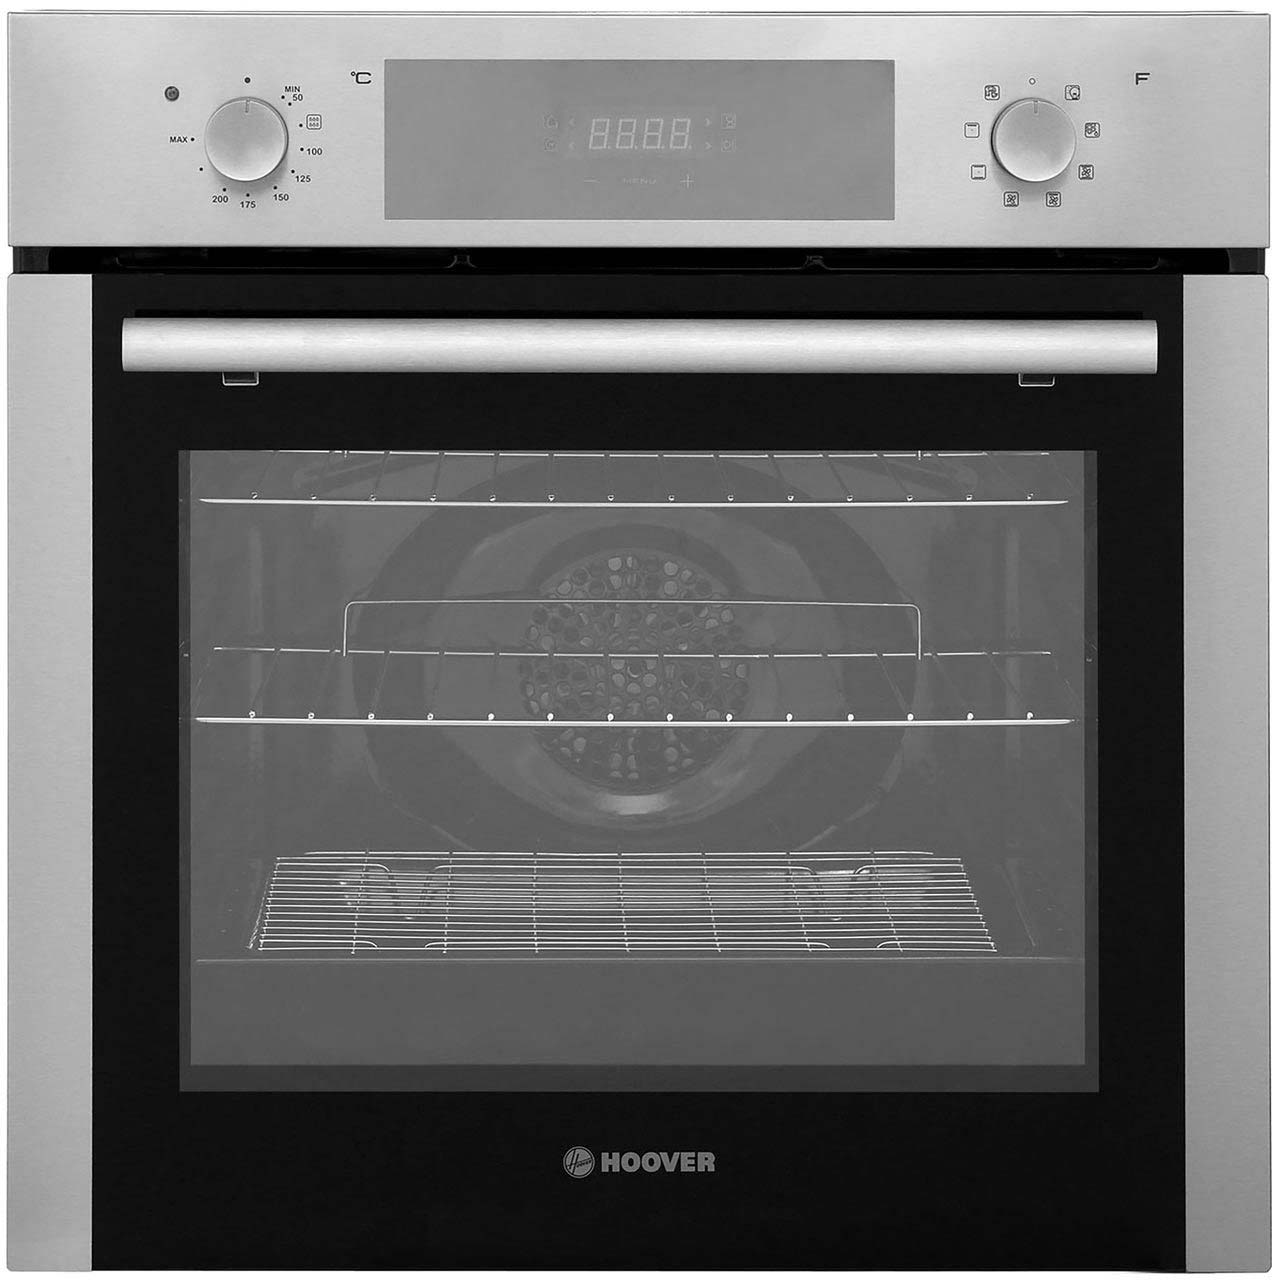 Hoover Built-In Electric Single Oven | HOC3250NI